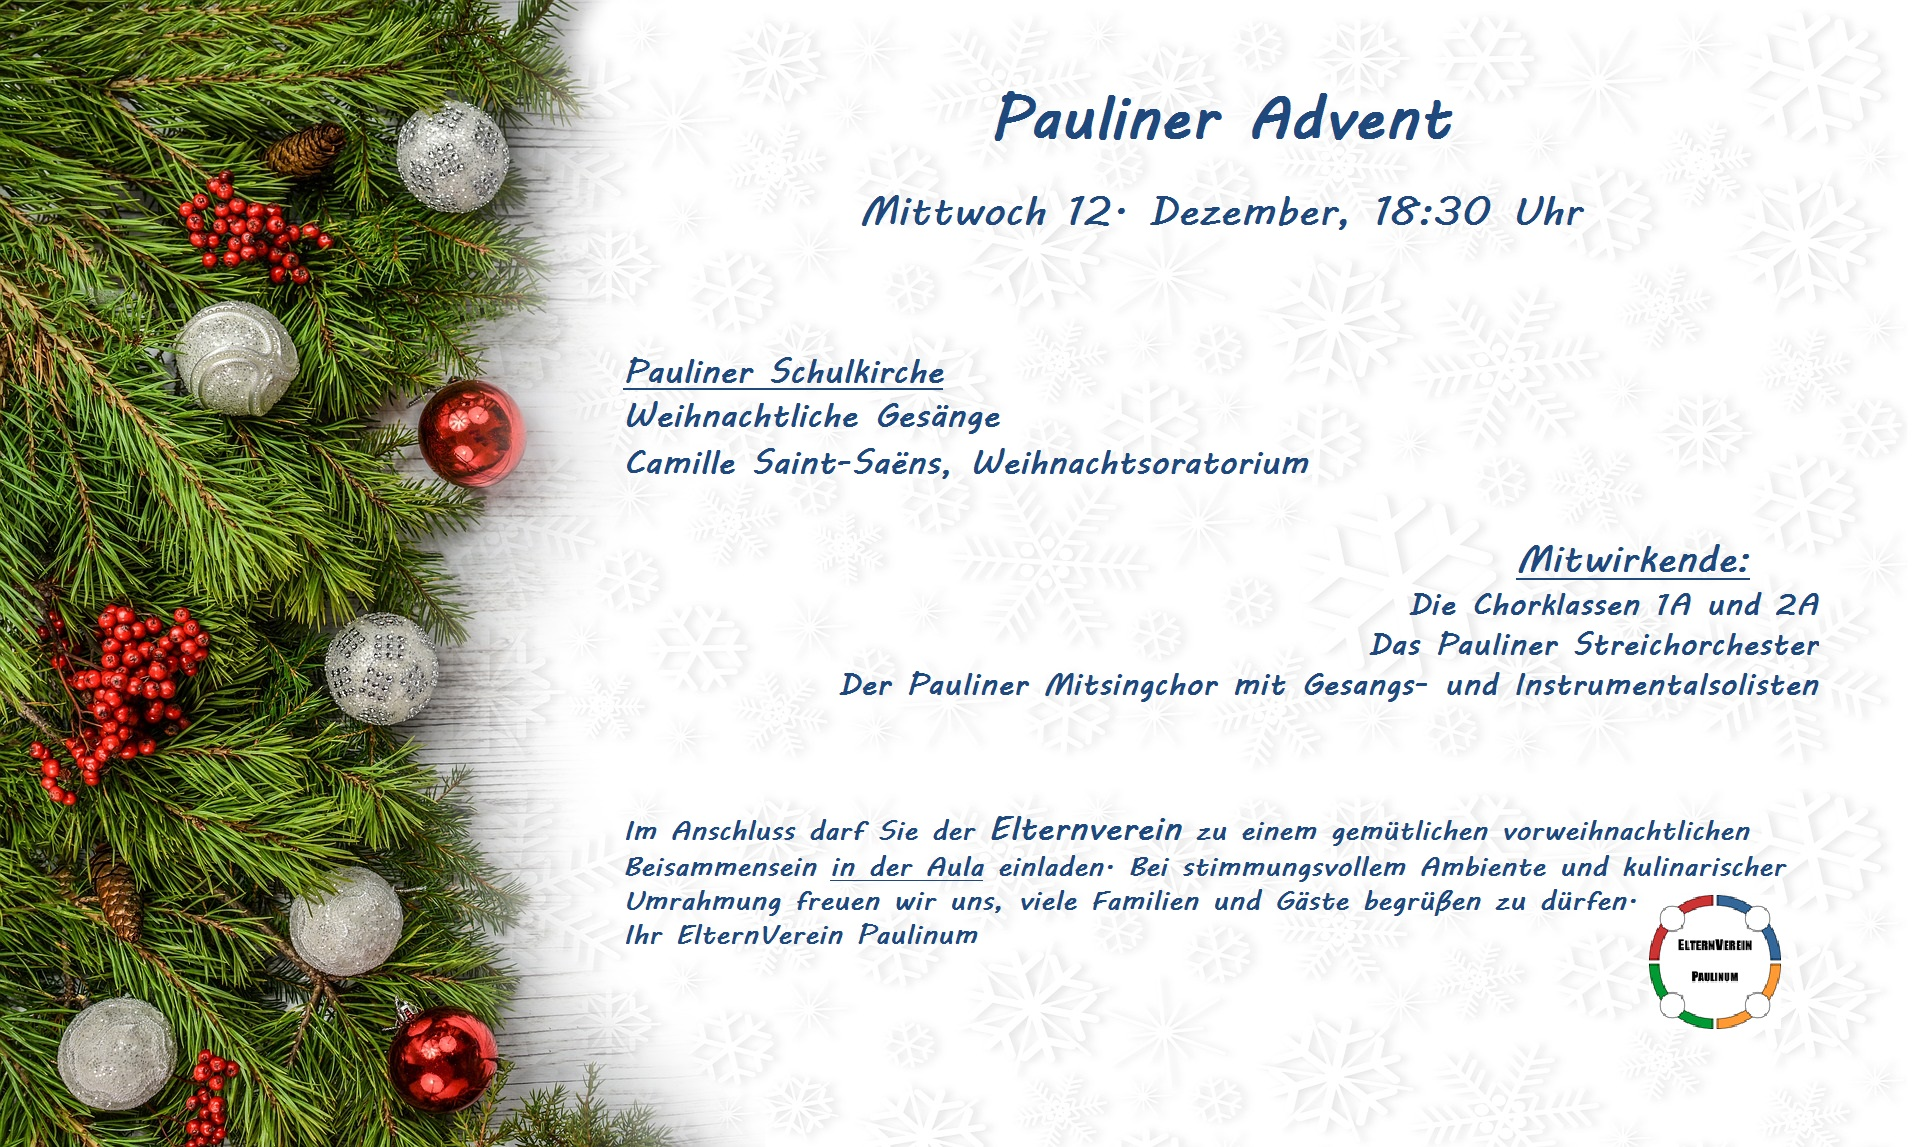 Einladung Pauliner Advent 2018 Text3